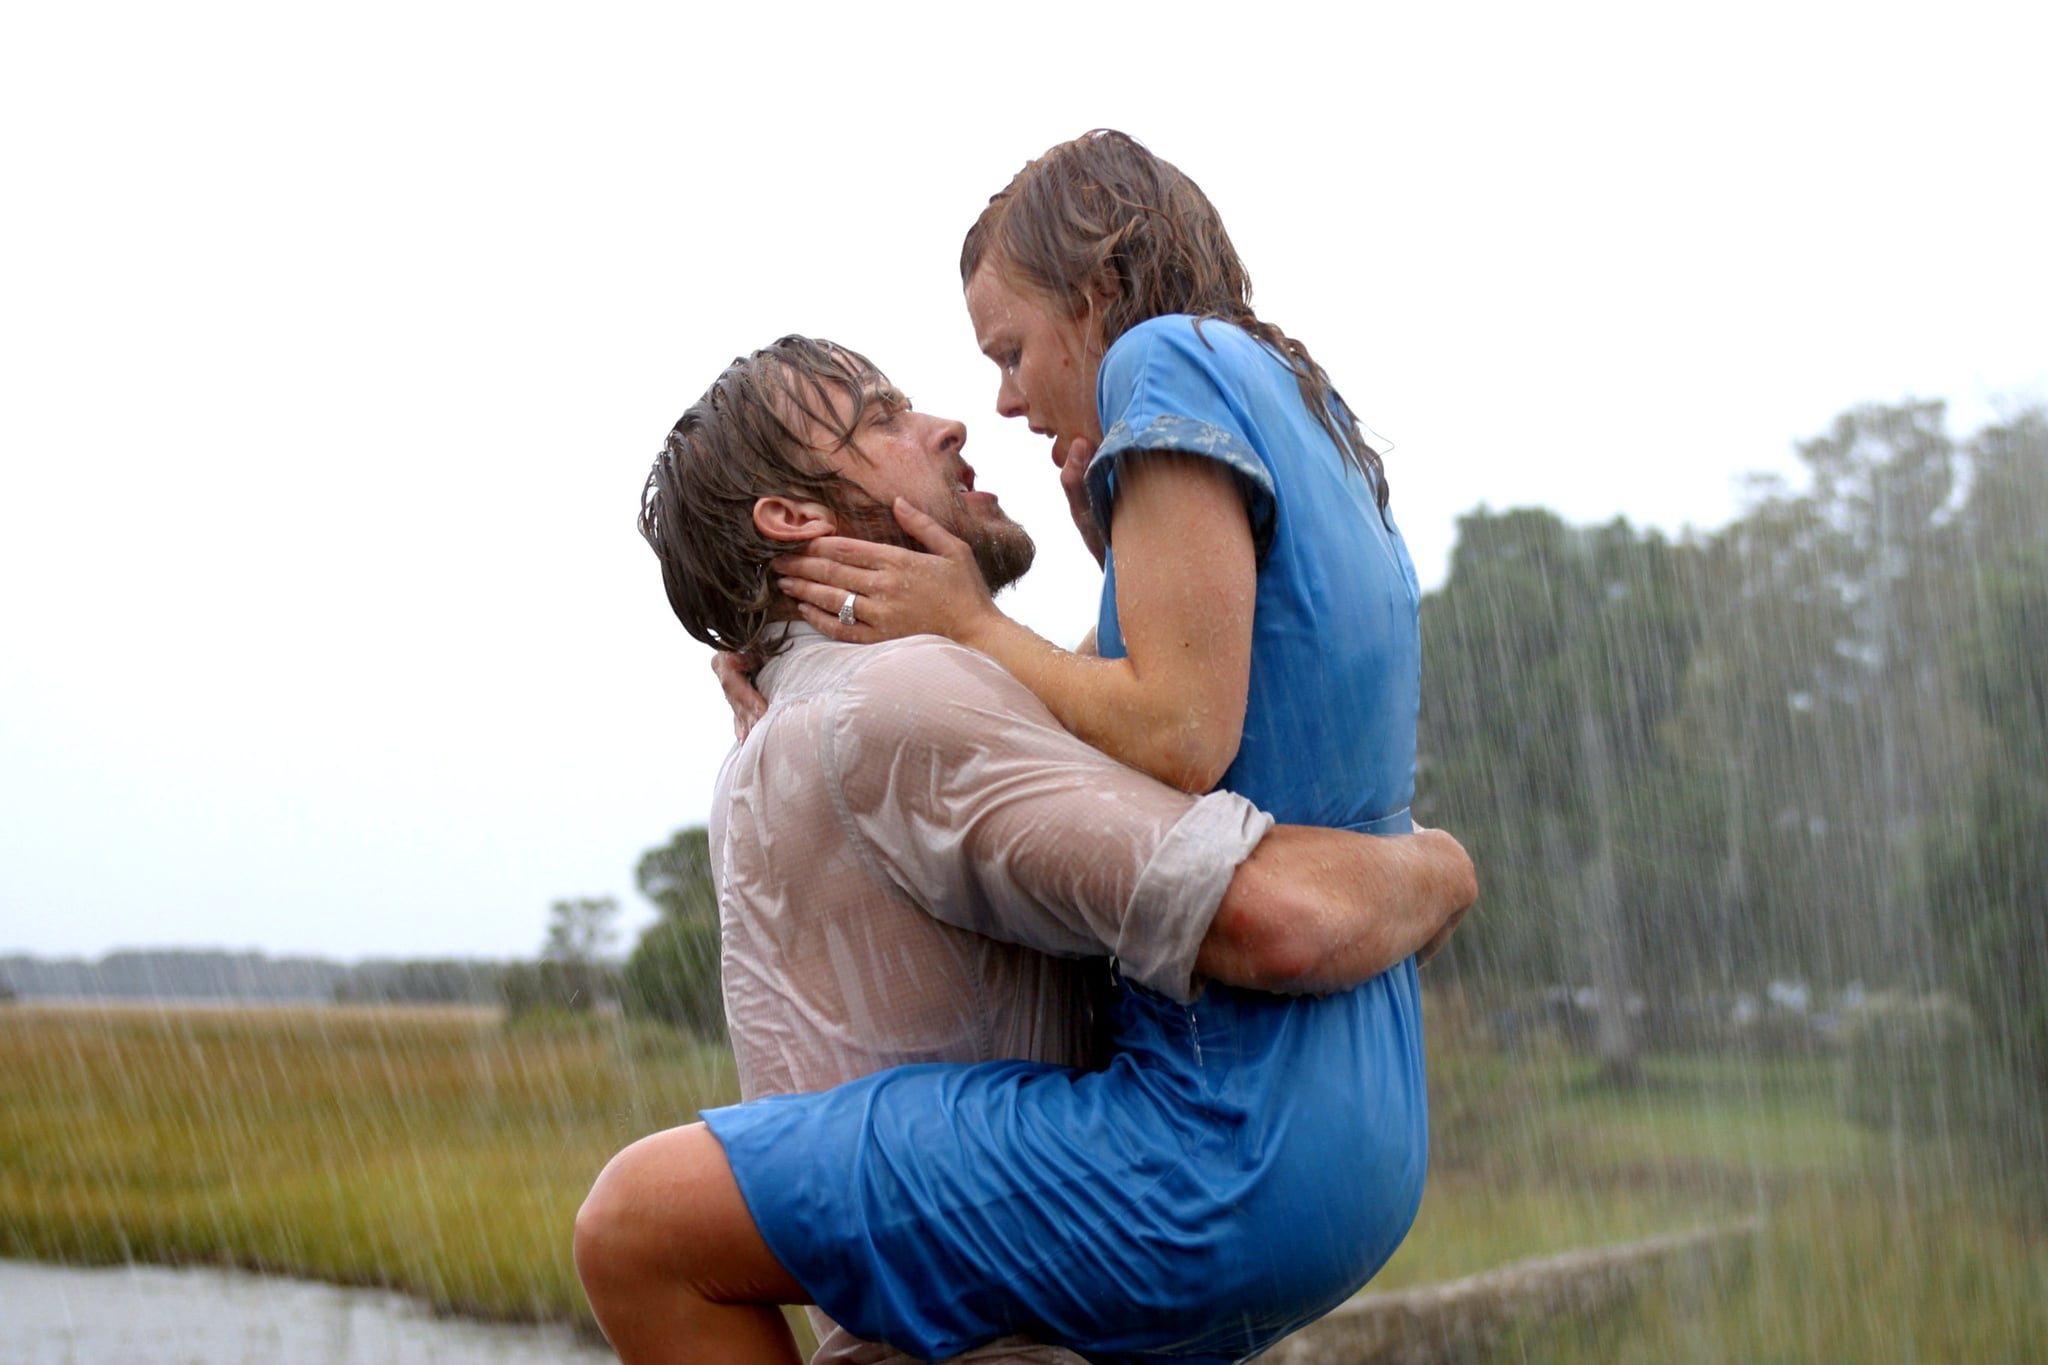 THE NOTEBOOK, Ryan Gosling, Rachel McAdams, 2004, (c) New Line/courtesy Everett Collection